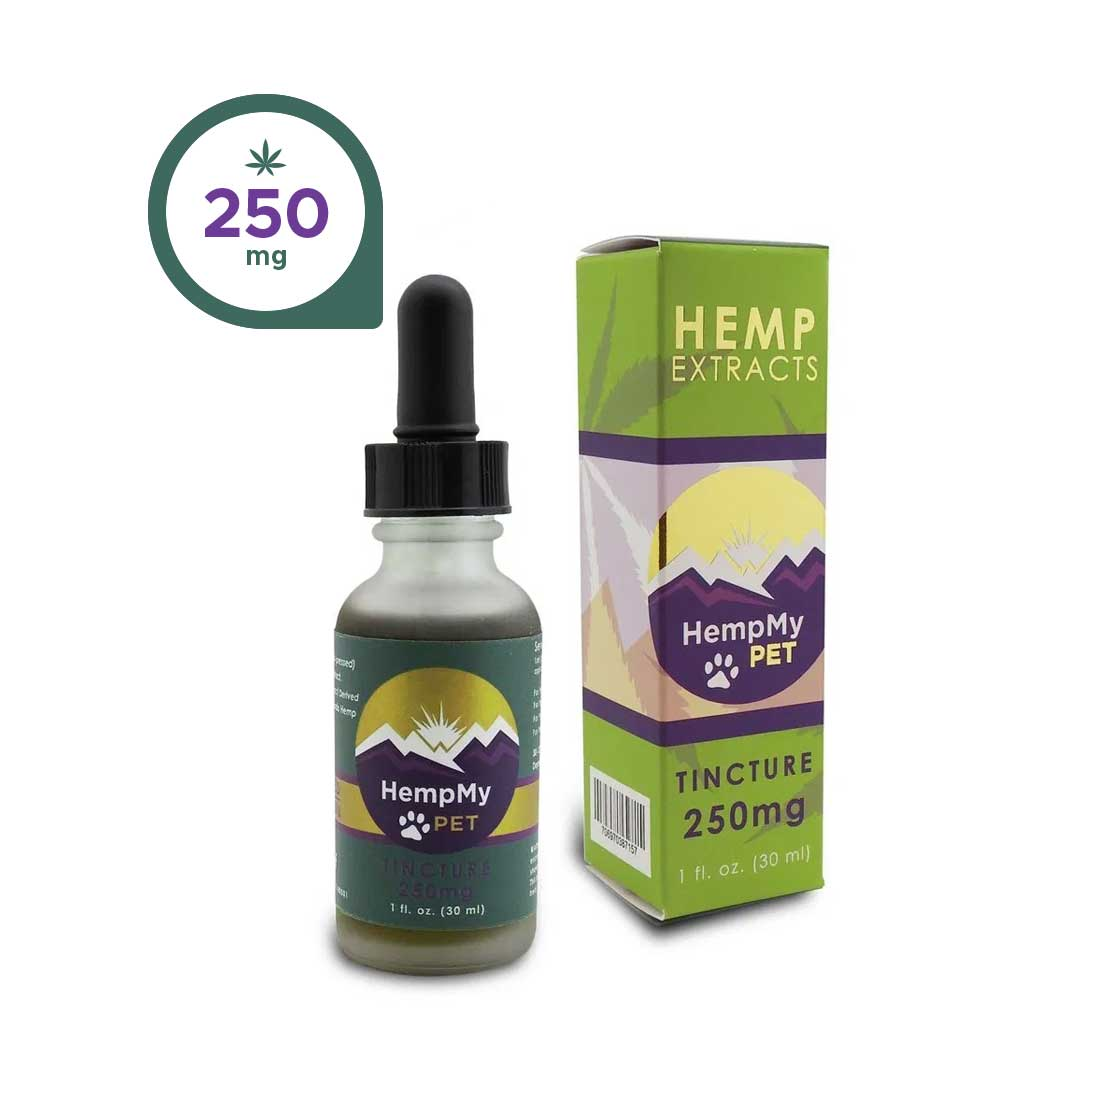 Hemp Seed Oil, Organic - 250mg CBD and CBG (1 fl. oz. bottle)